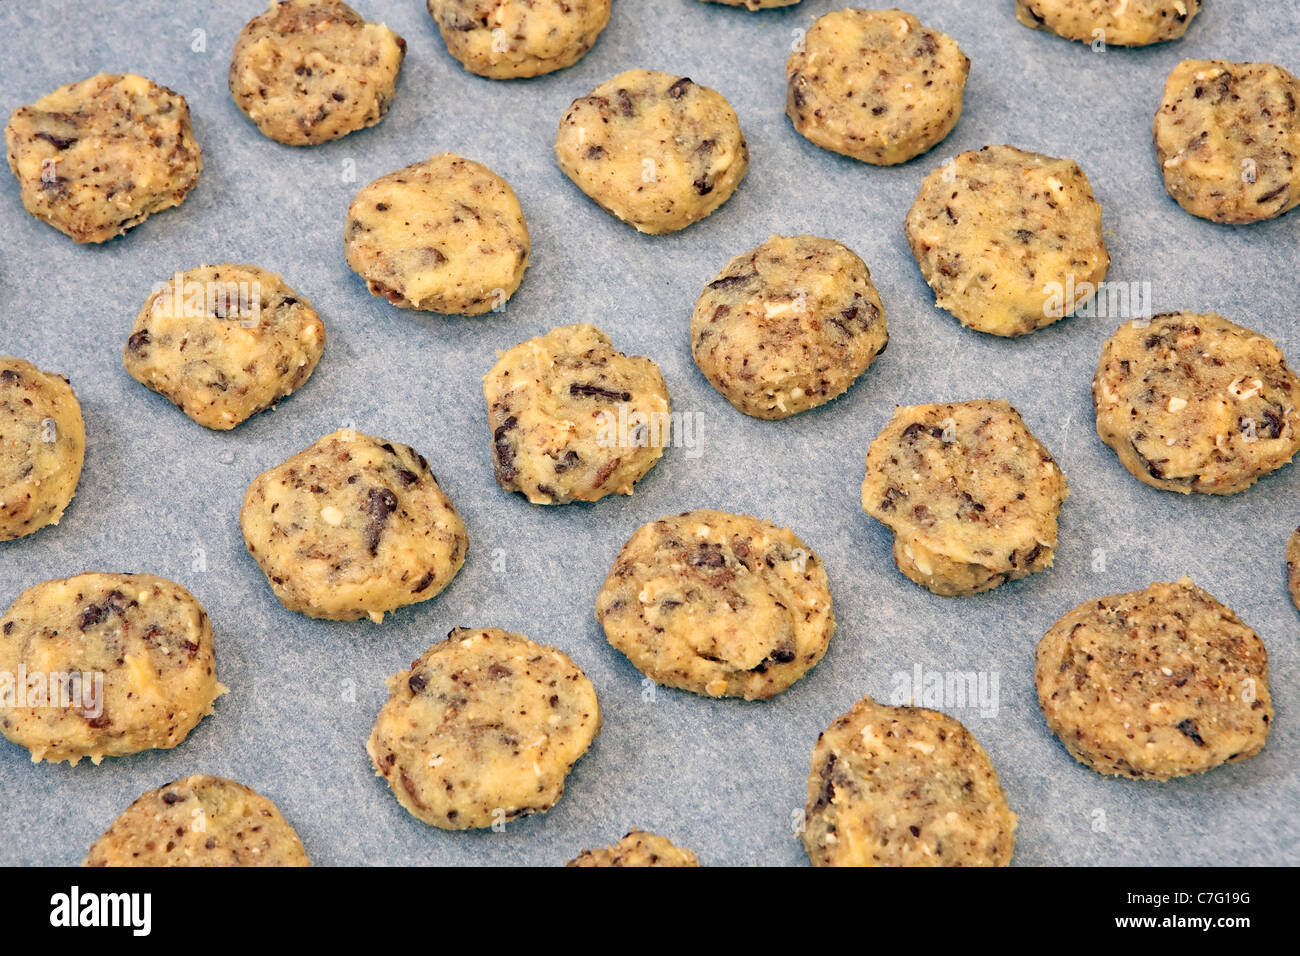 unbaked chocolate cookies on a baking sheet - Stock Image